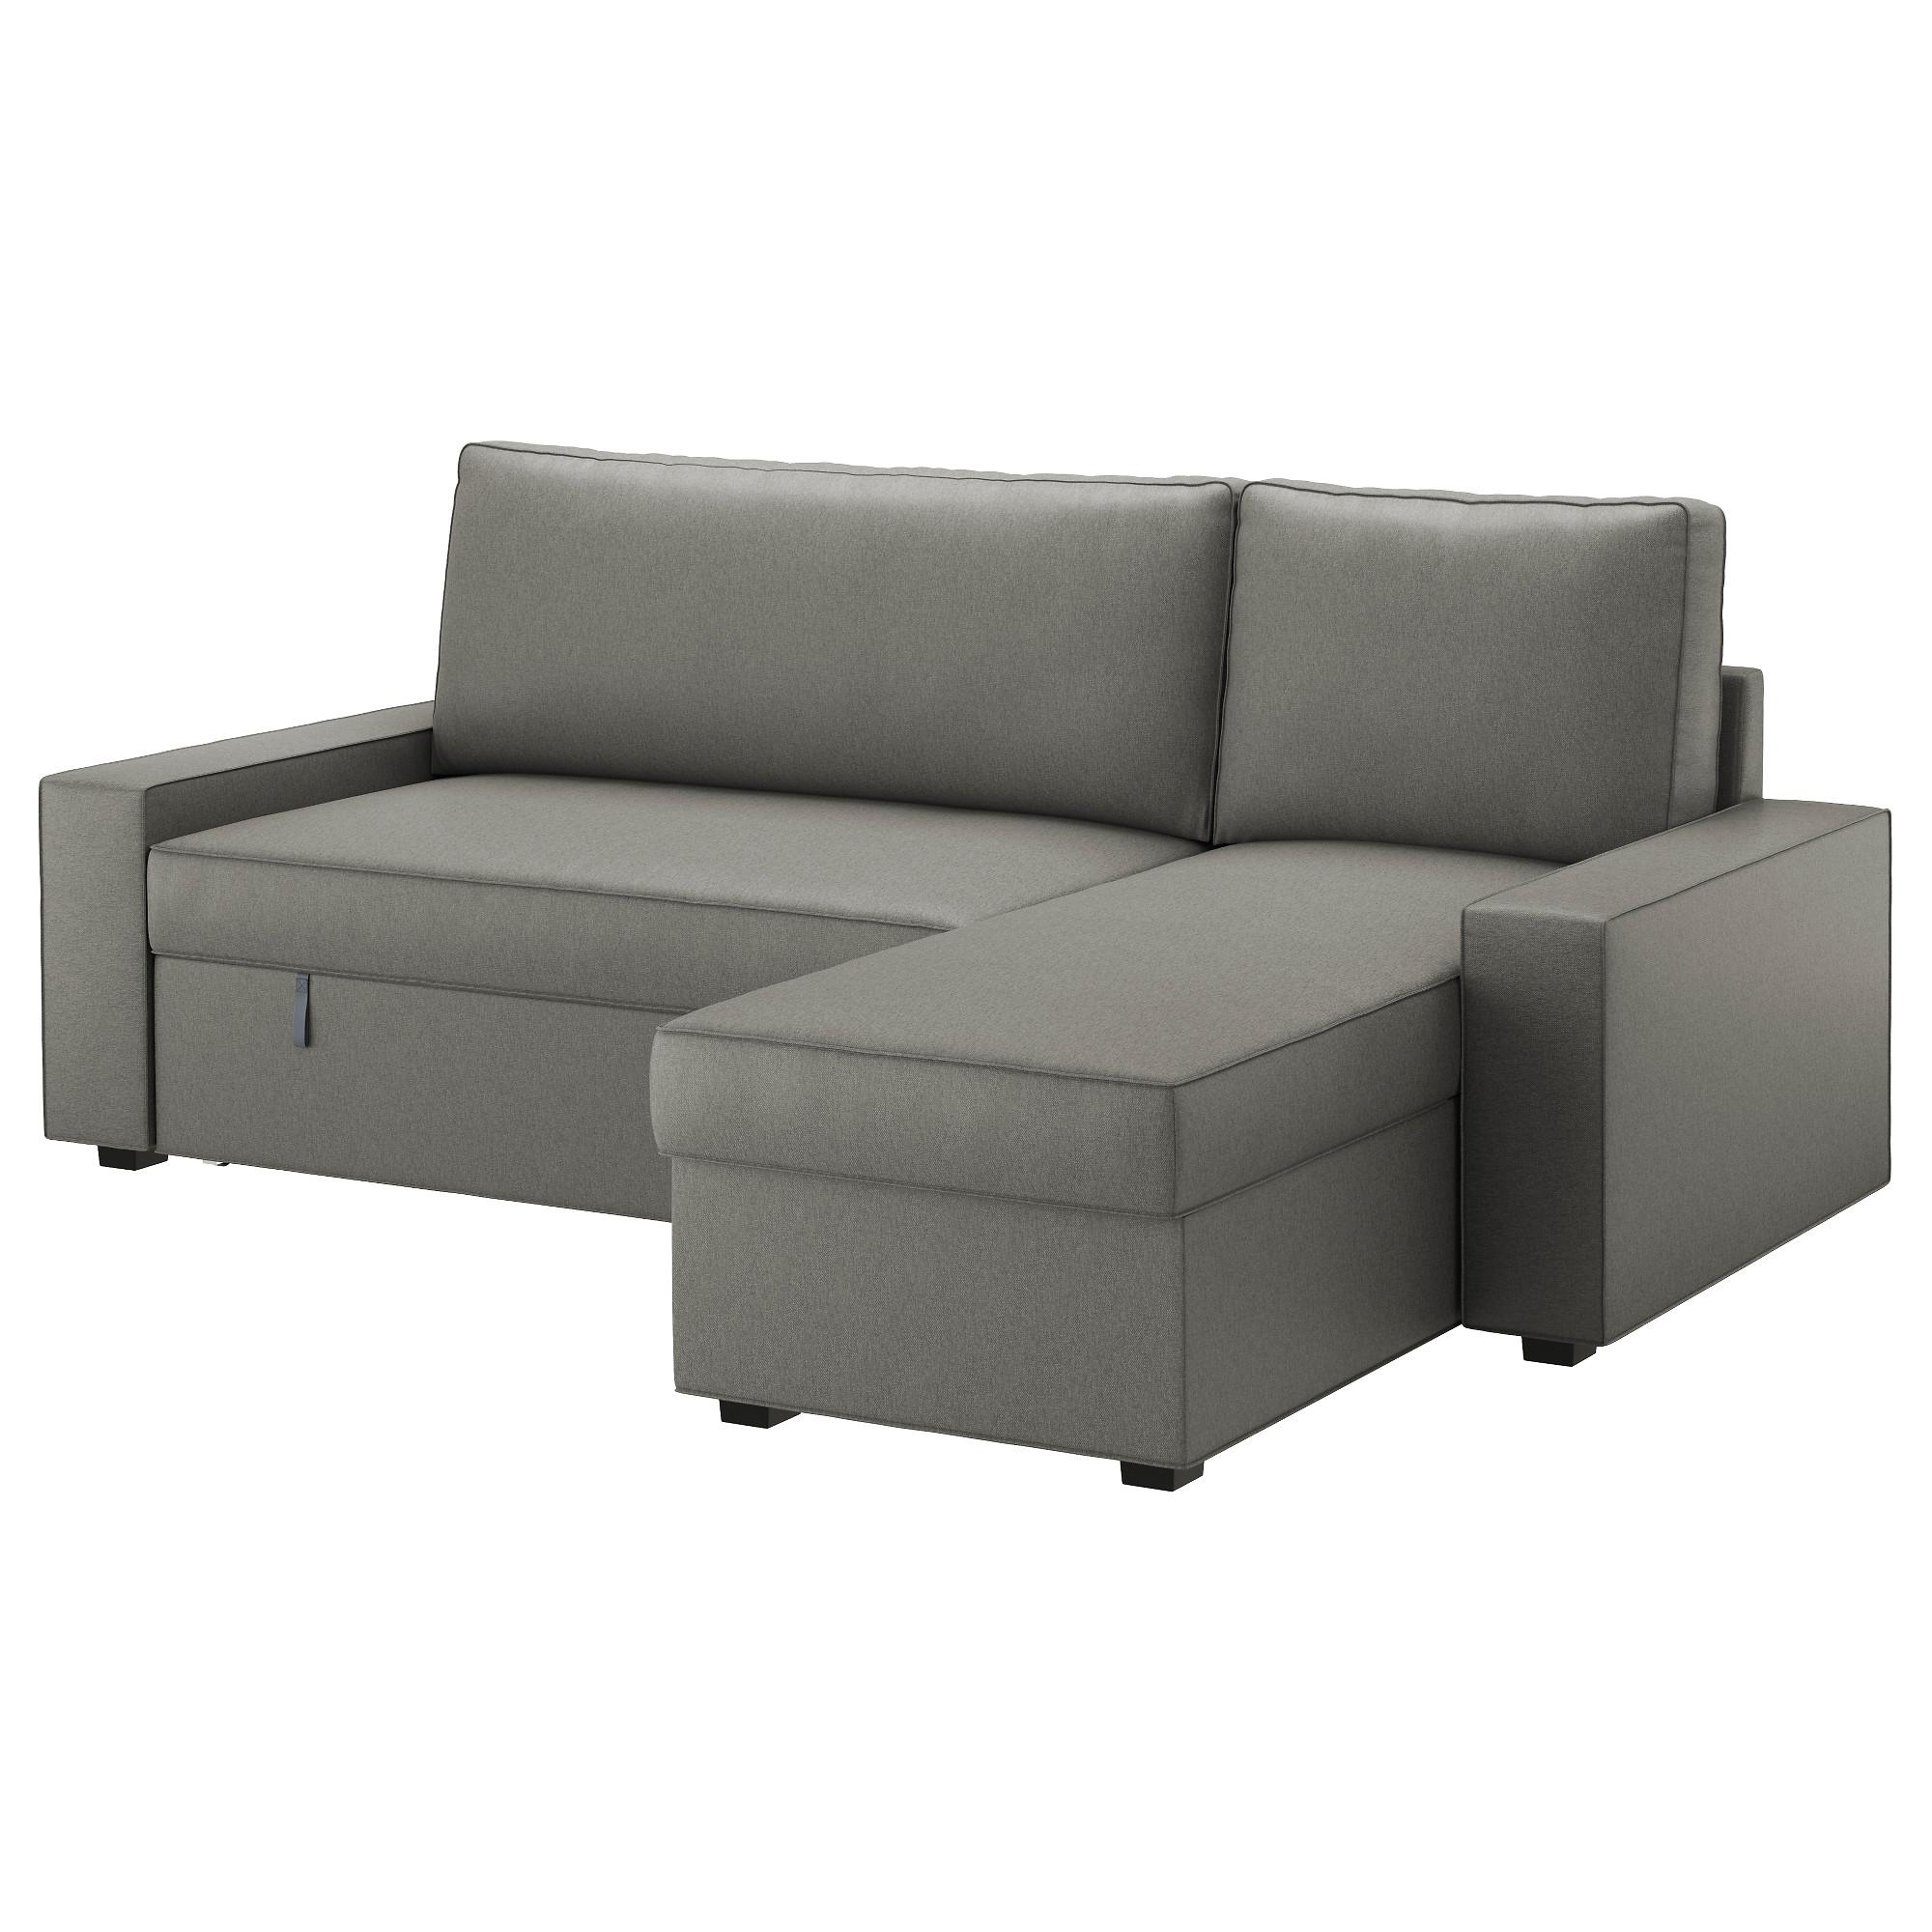 Vilasund Sofa Bed With Chaise Longue Borred Grey Green – Ikea Regarding Chaise Longue Sofa Beds (View 2 of 20)